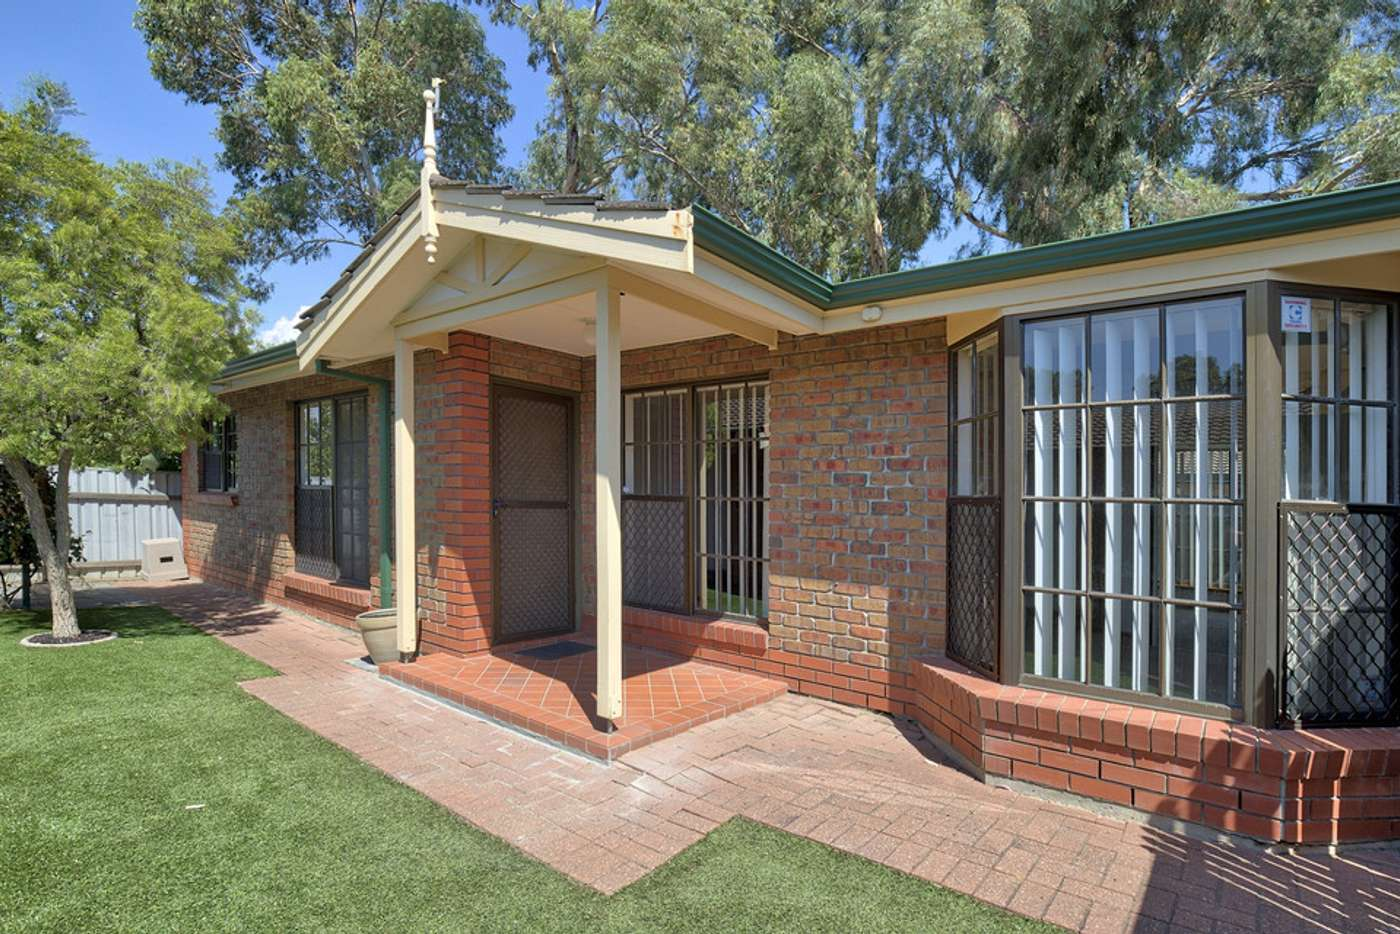 Main view of Homely unit listing, 3/18 Gorge Road, Campbelltown SA 5074